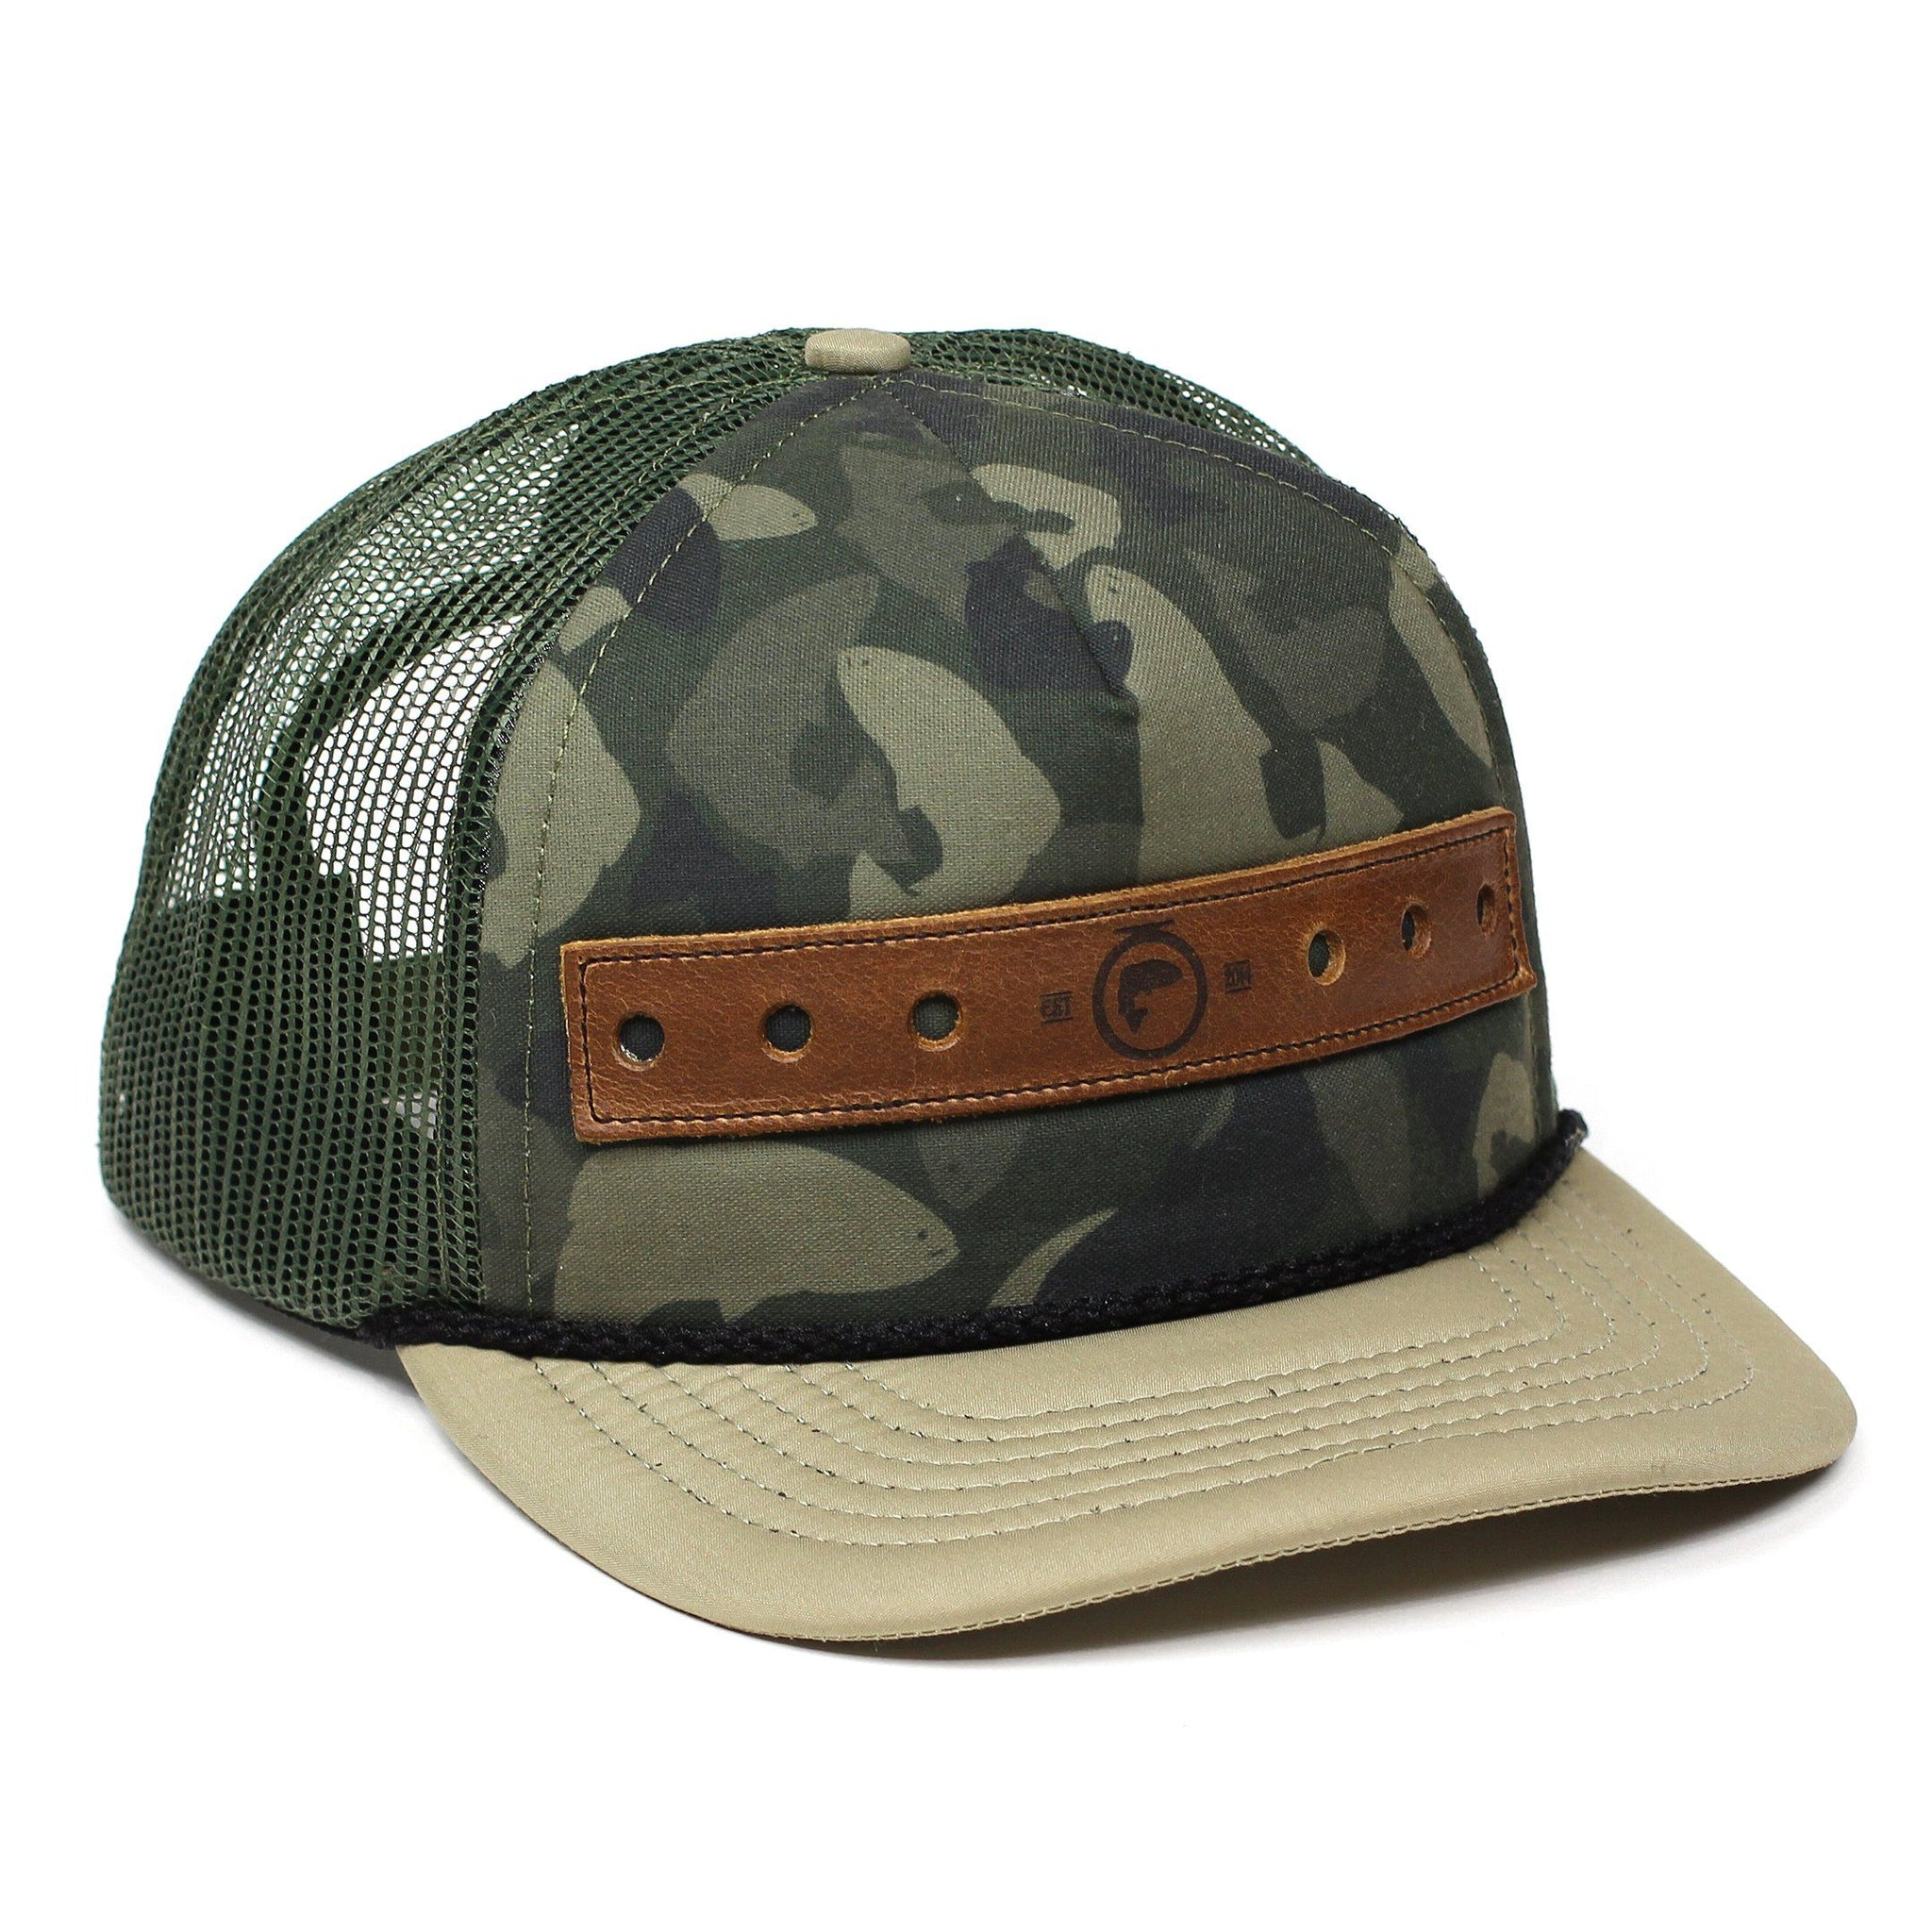 Fly fishing hats fly fishing trucker hat camofish print for Mesh fishing hats